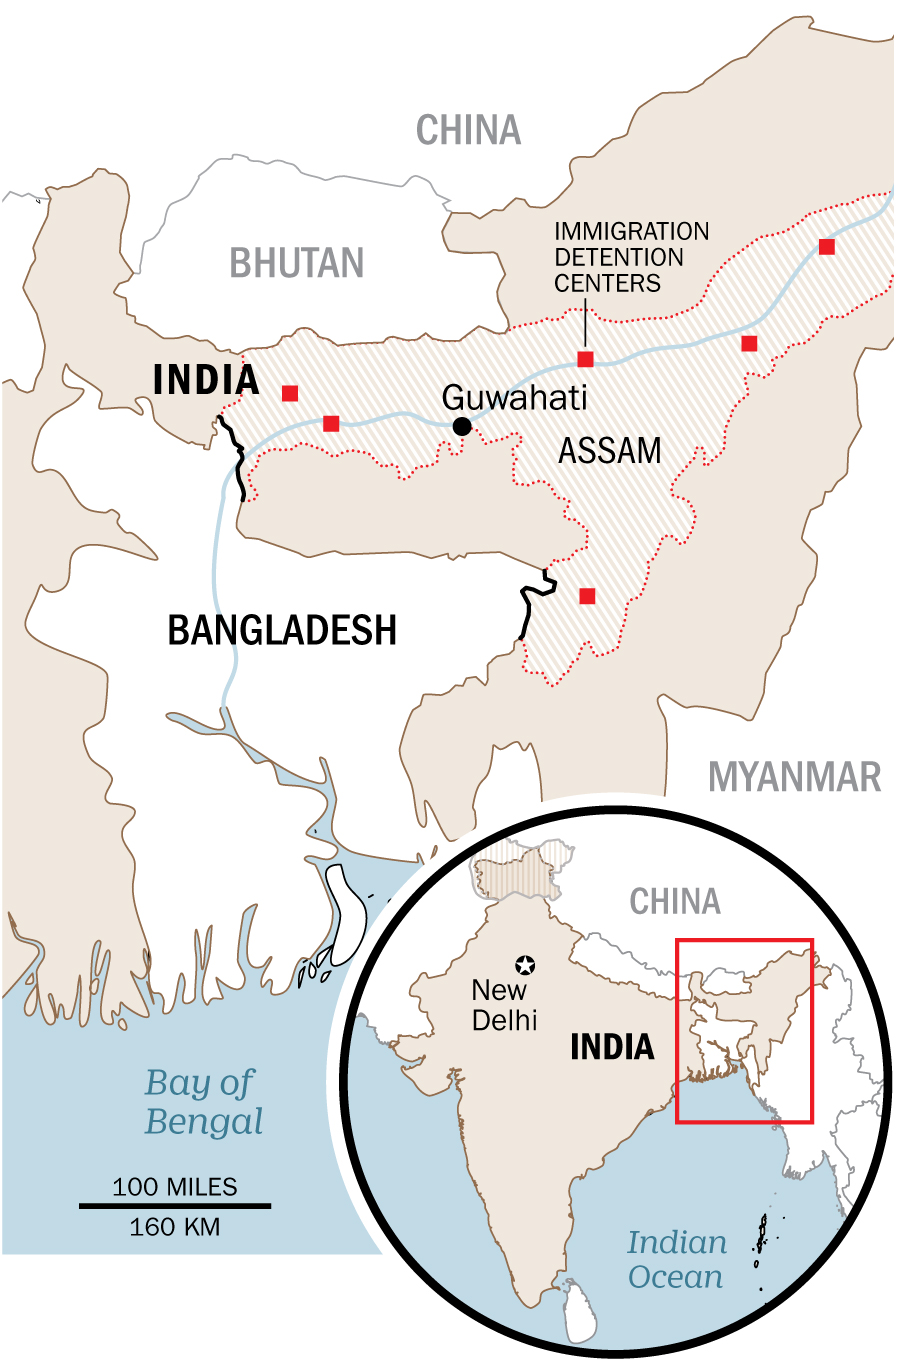 Currently, there are six detention centers for people who are found to be noncitizens in Assam. They have a combined capacity of 3,300 people